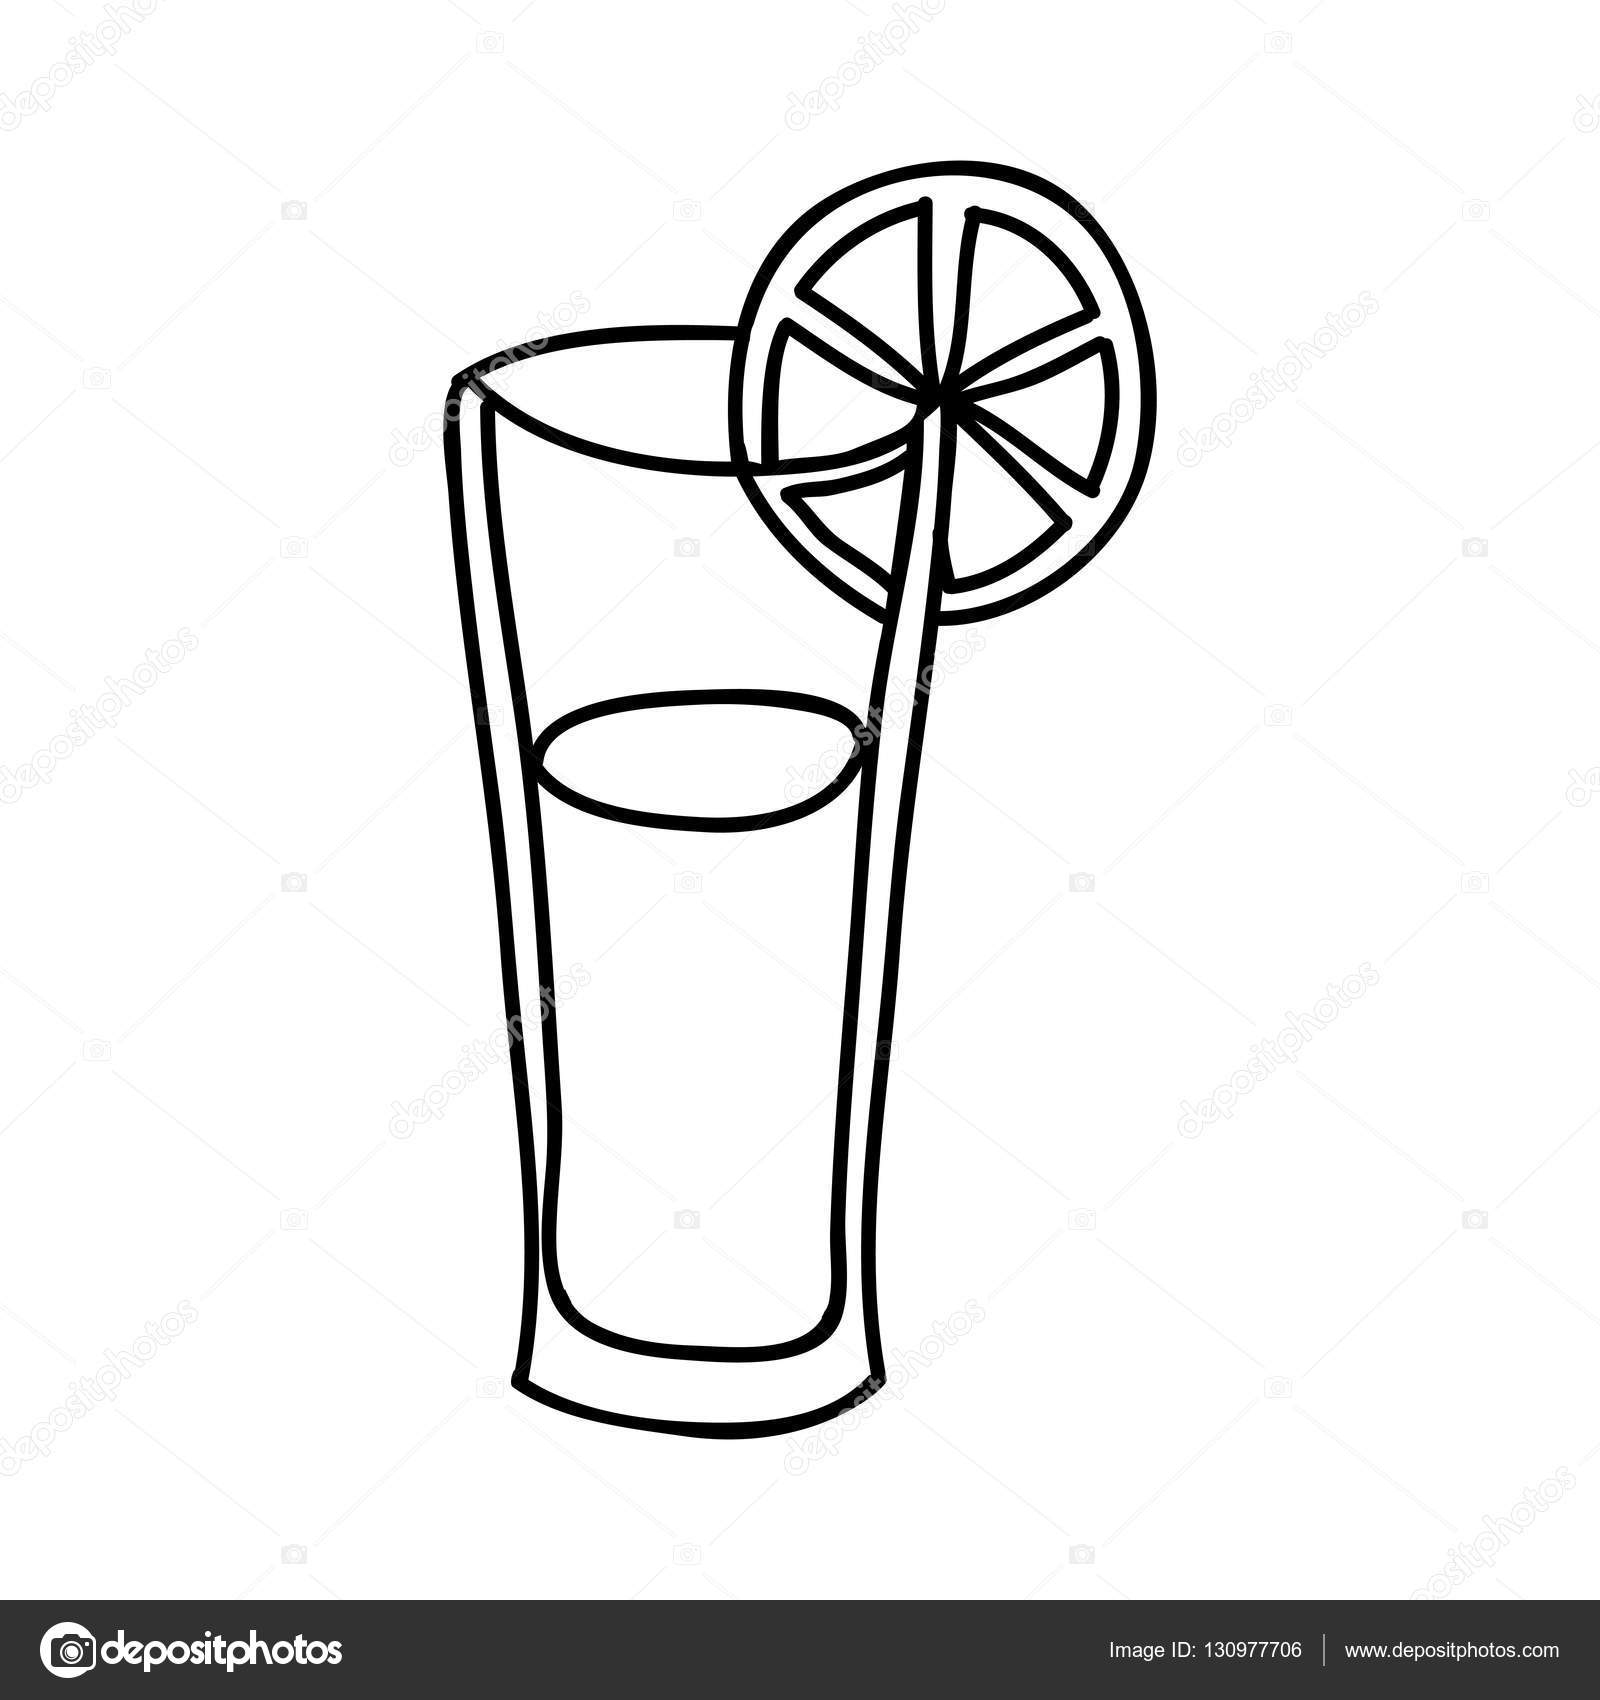 Drawn glasses glass juice — Fruit icon juice image